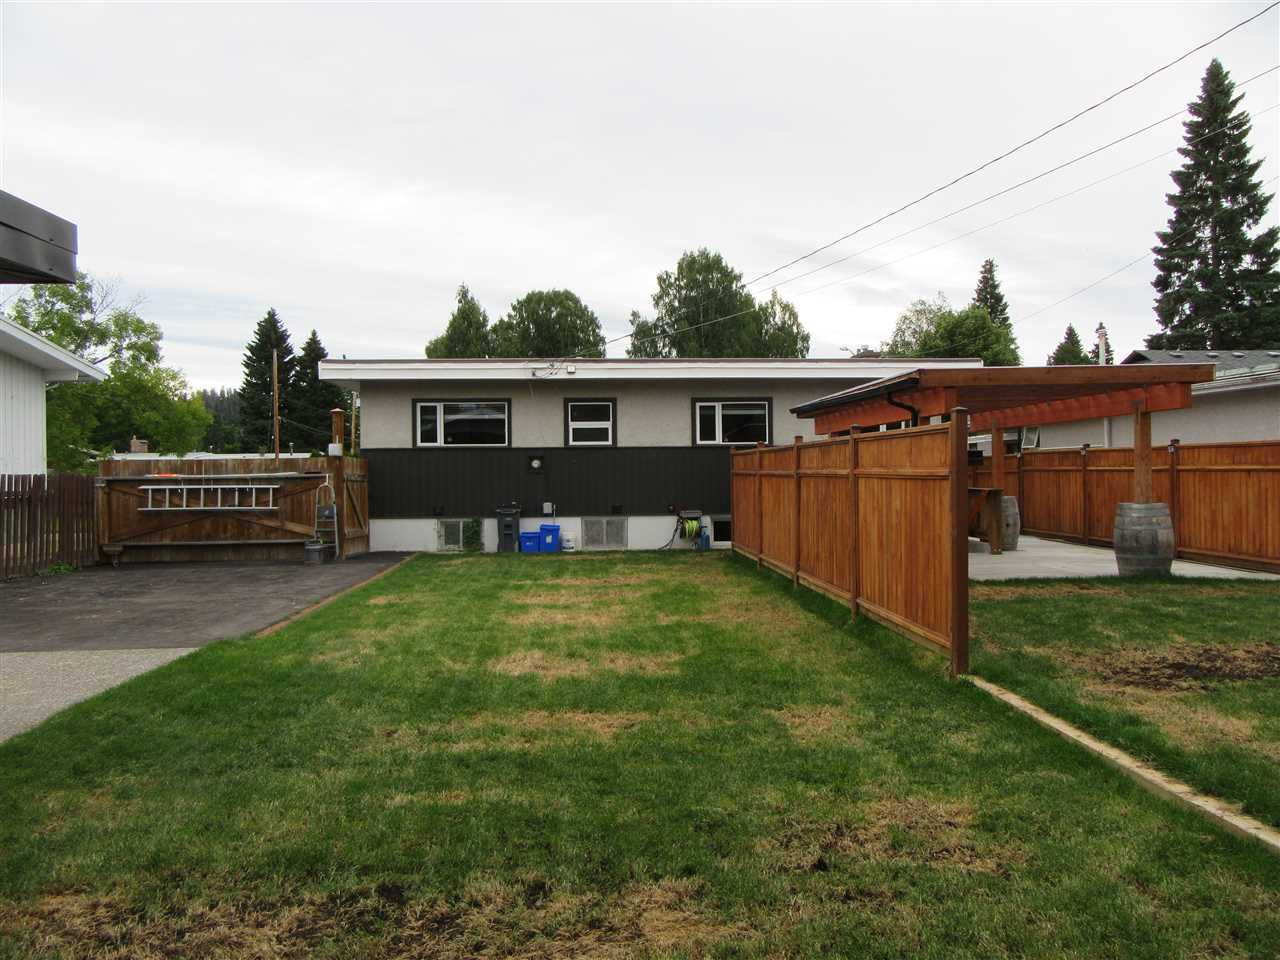 """Photo 5: Photos: 121 FREEMAN Street in Prince George: Nechako View House for sale in """"NECHAKO"""" (PG City Central (Zone 72))  : MLS®# R2493268"""